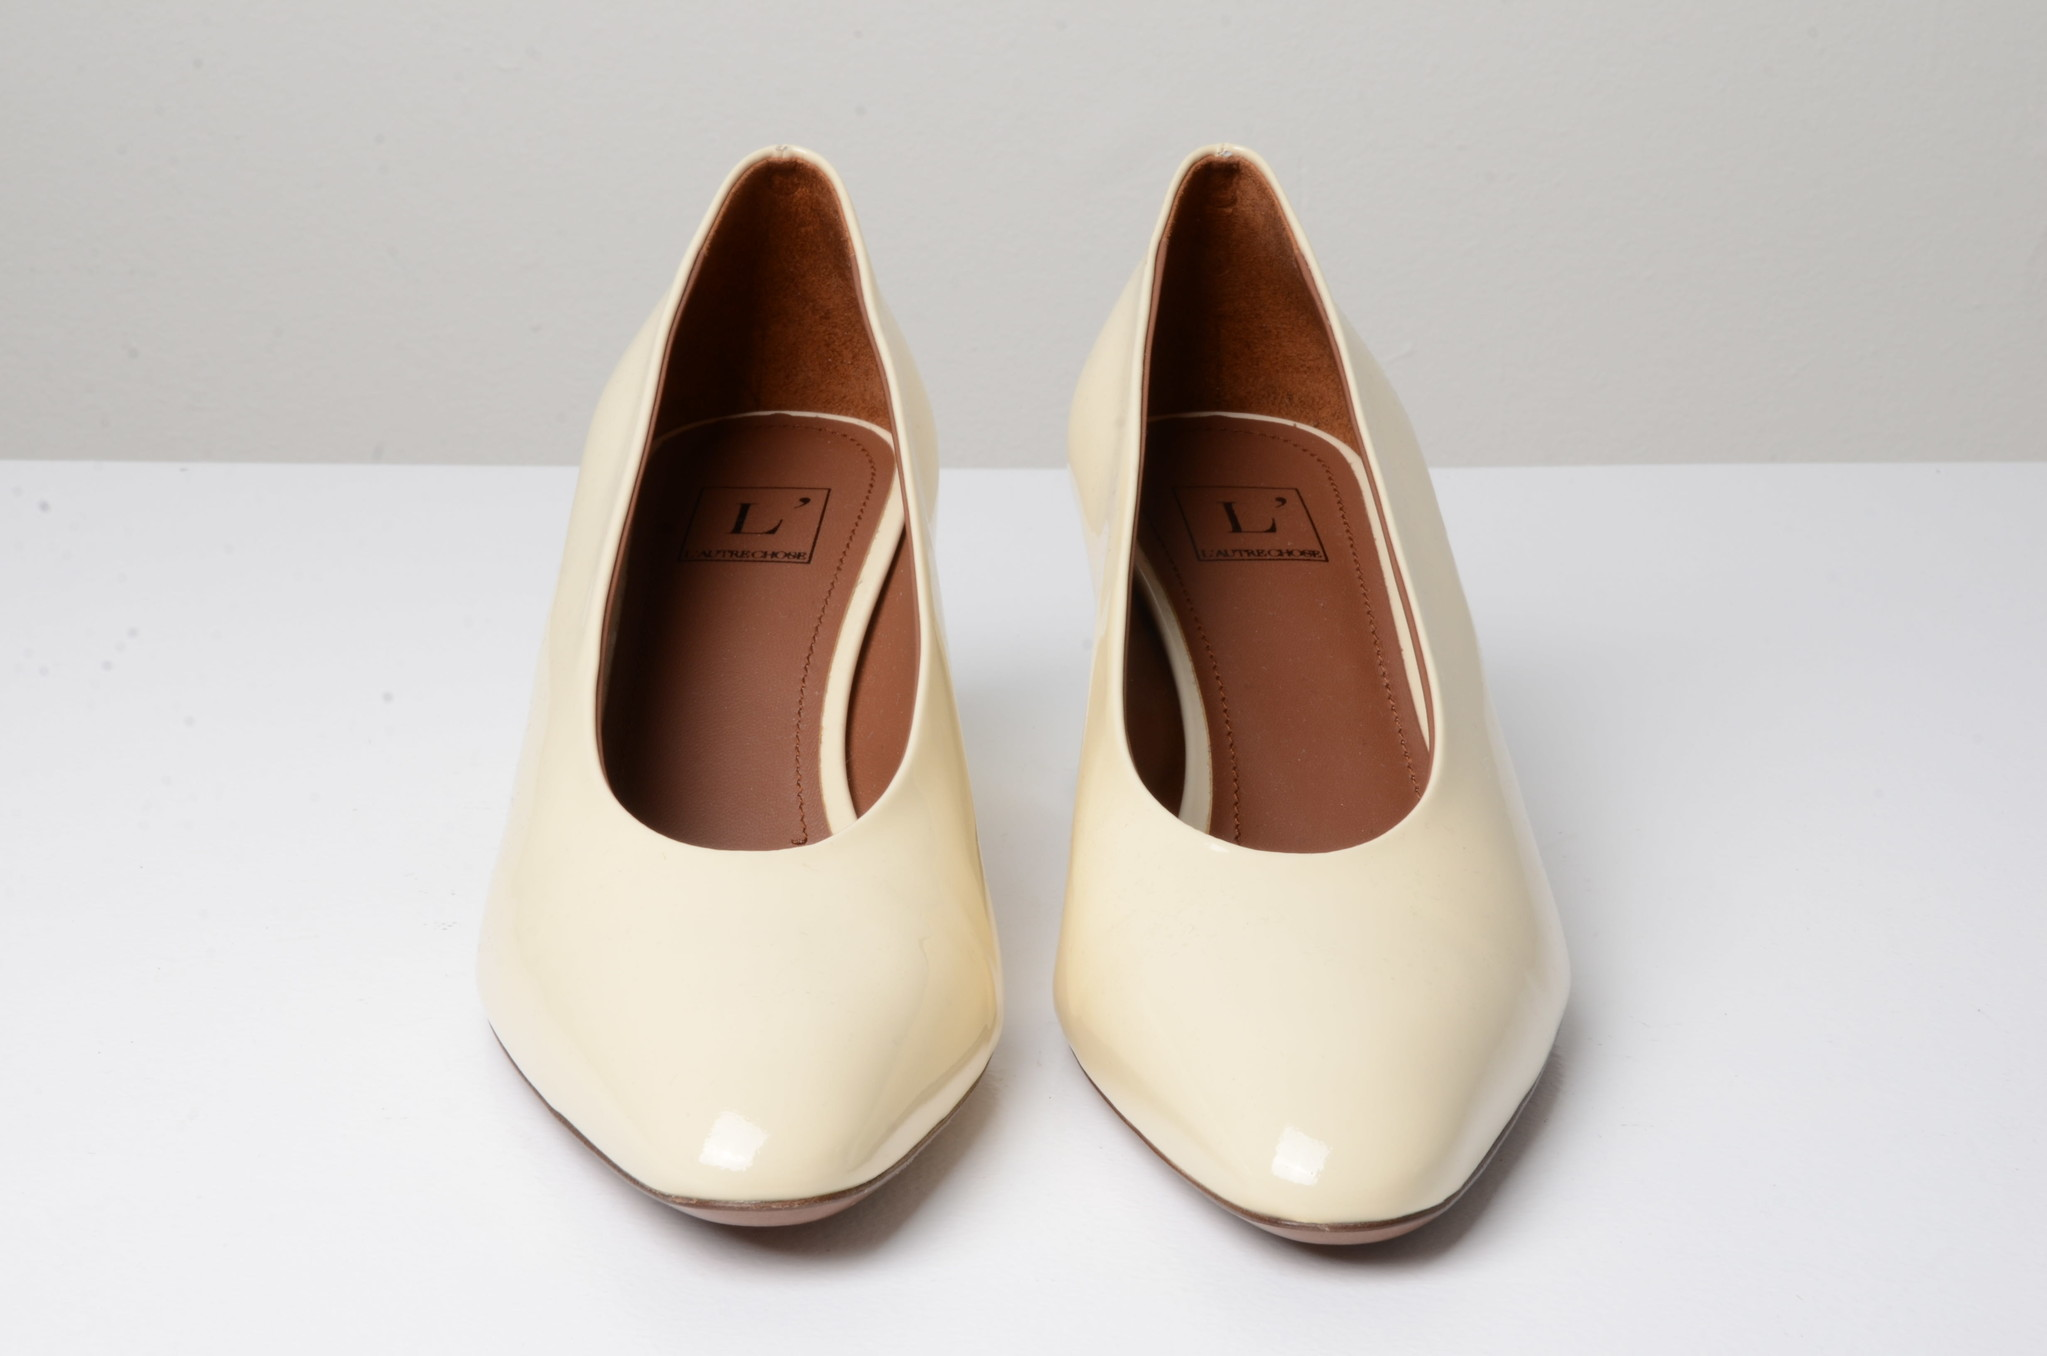 PATENT LEATHER SHOES CREAM-5